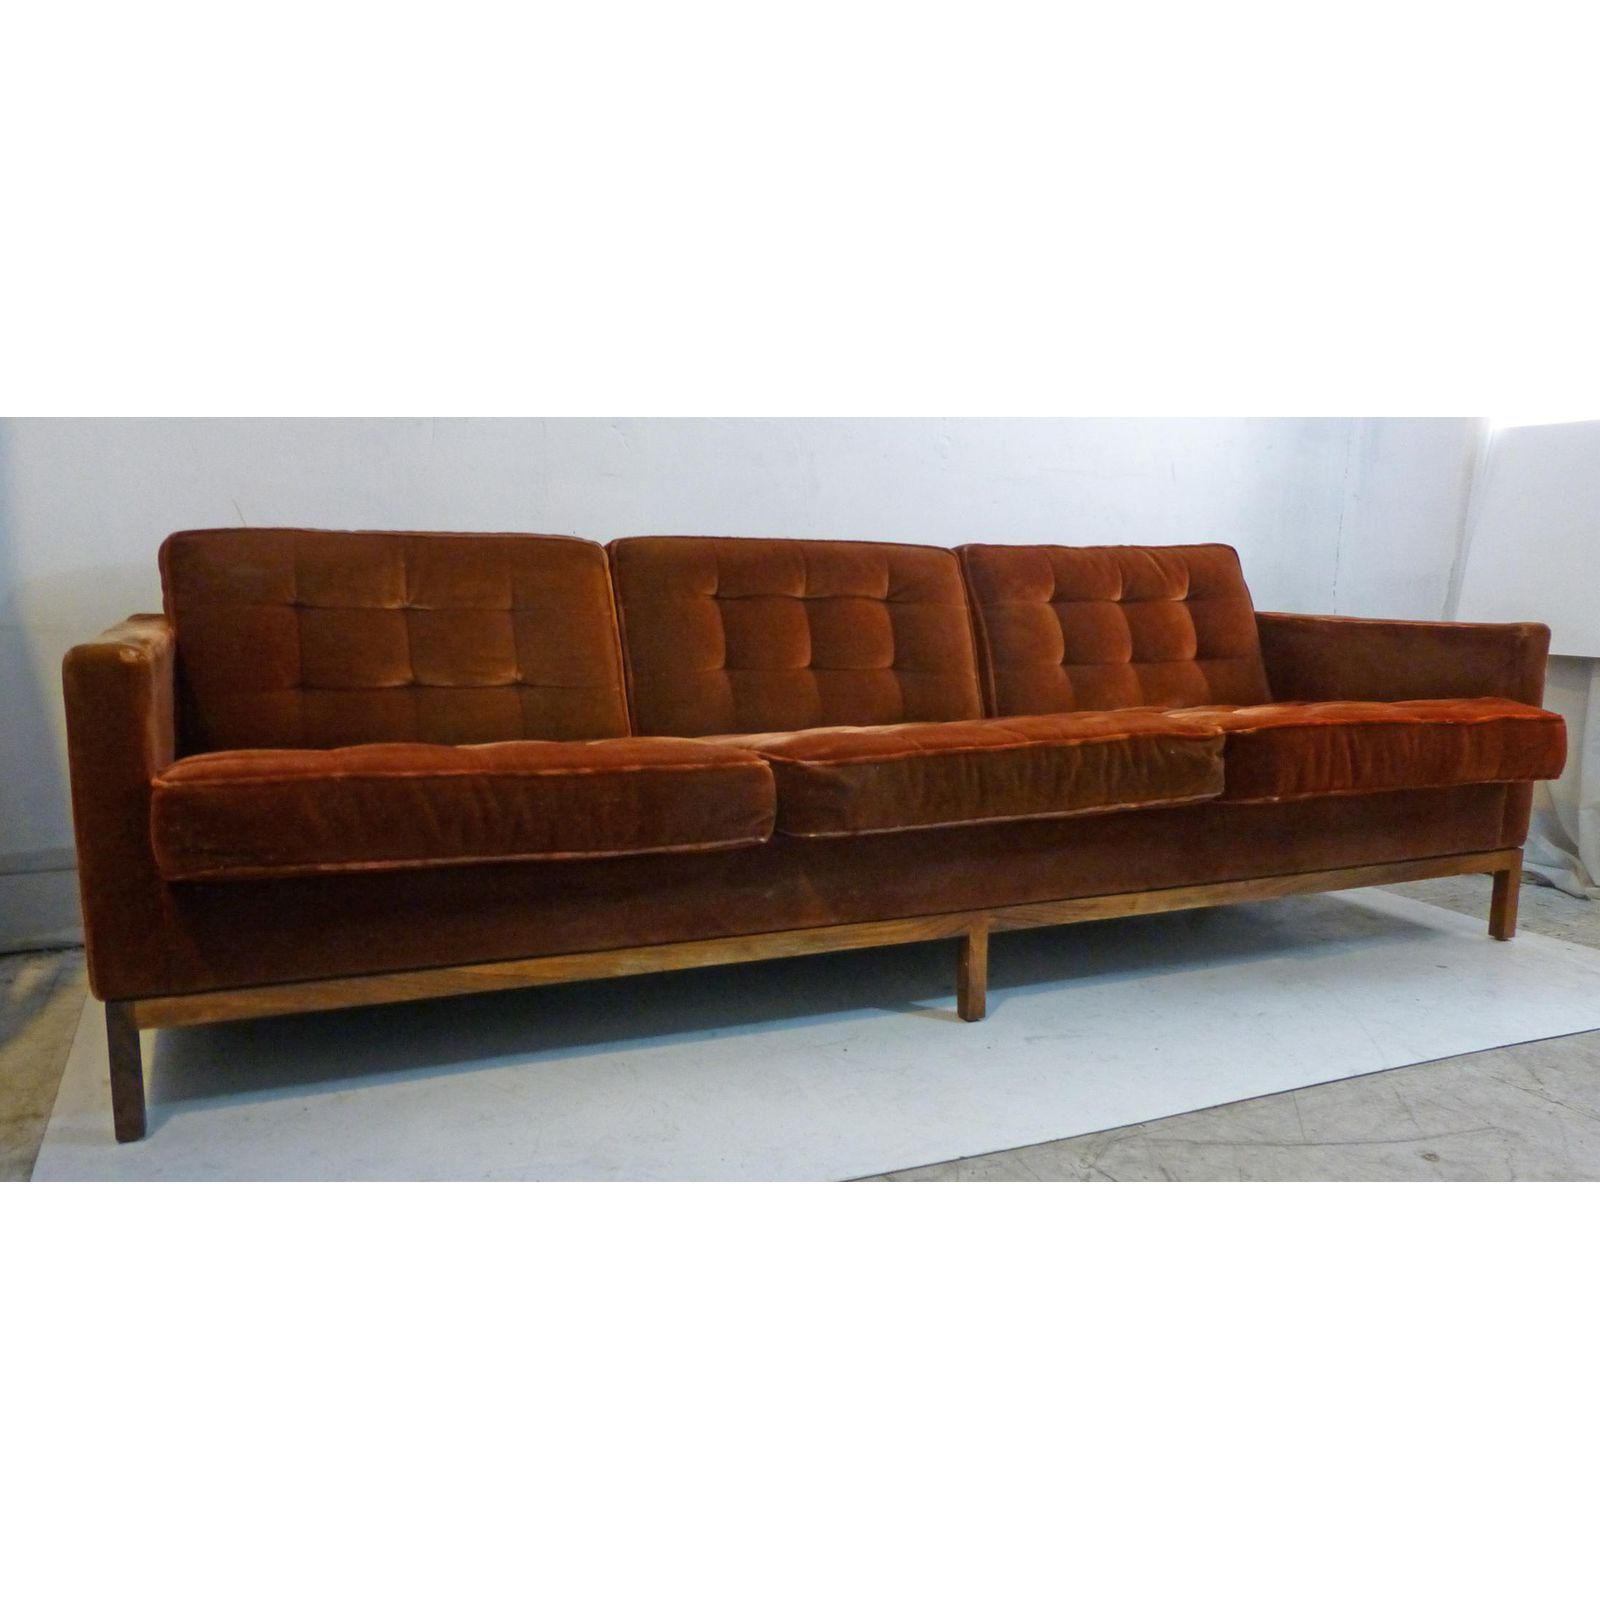 Widely Used Image Of Vintage Florence Knoll Rosewood Base & Mohair Pertaining To Florence Mid Century Modern Velvet Right Sectional Sofas (View 5 of 20)